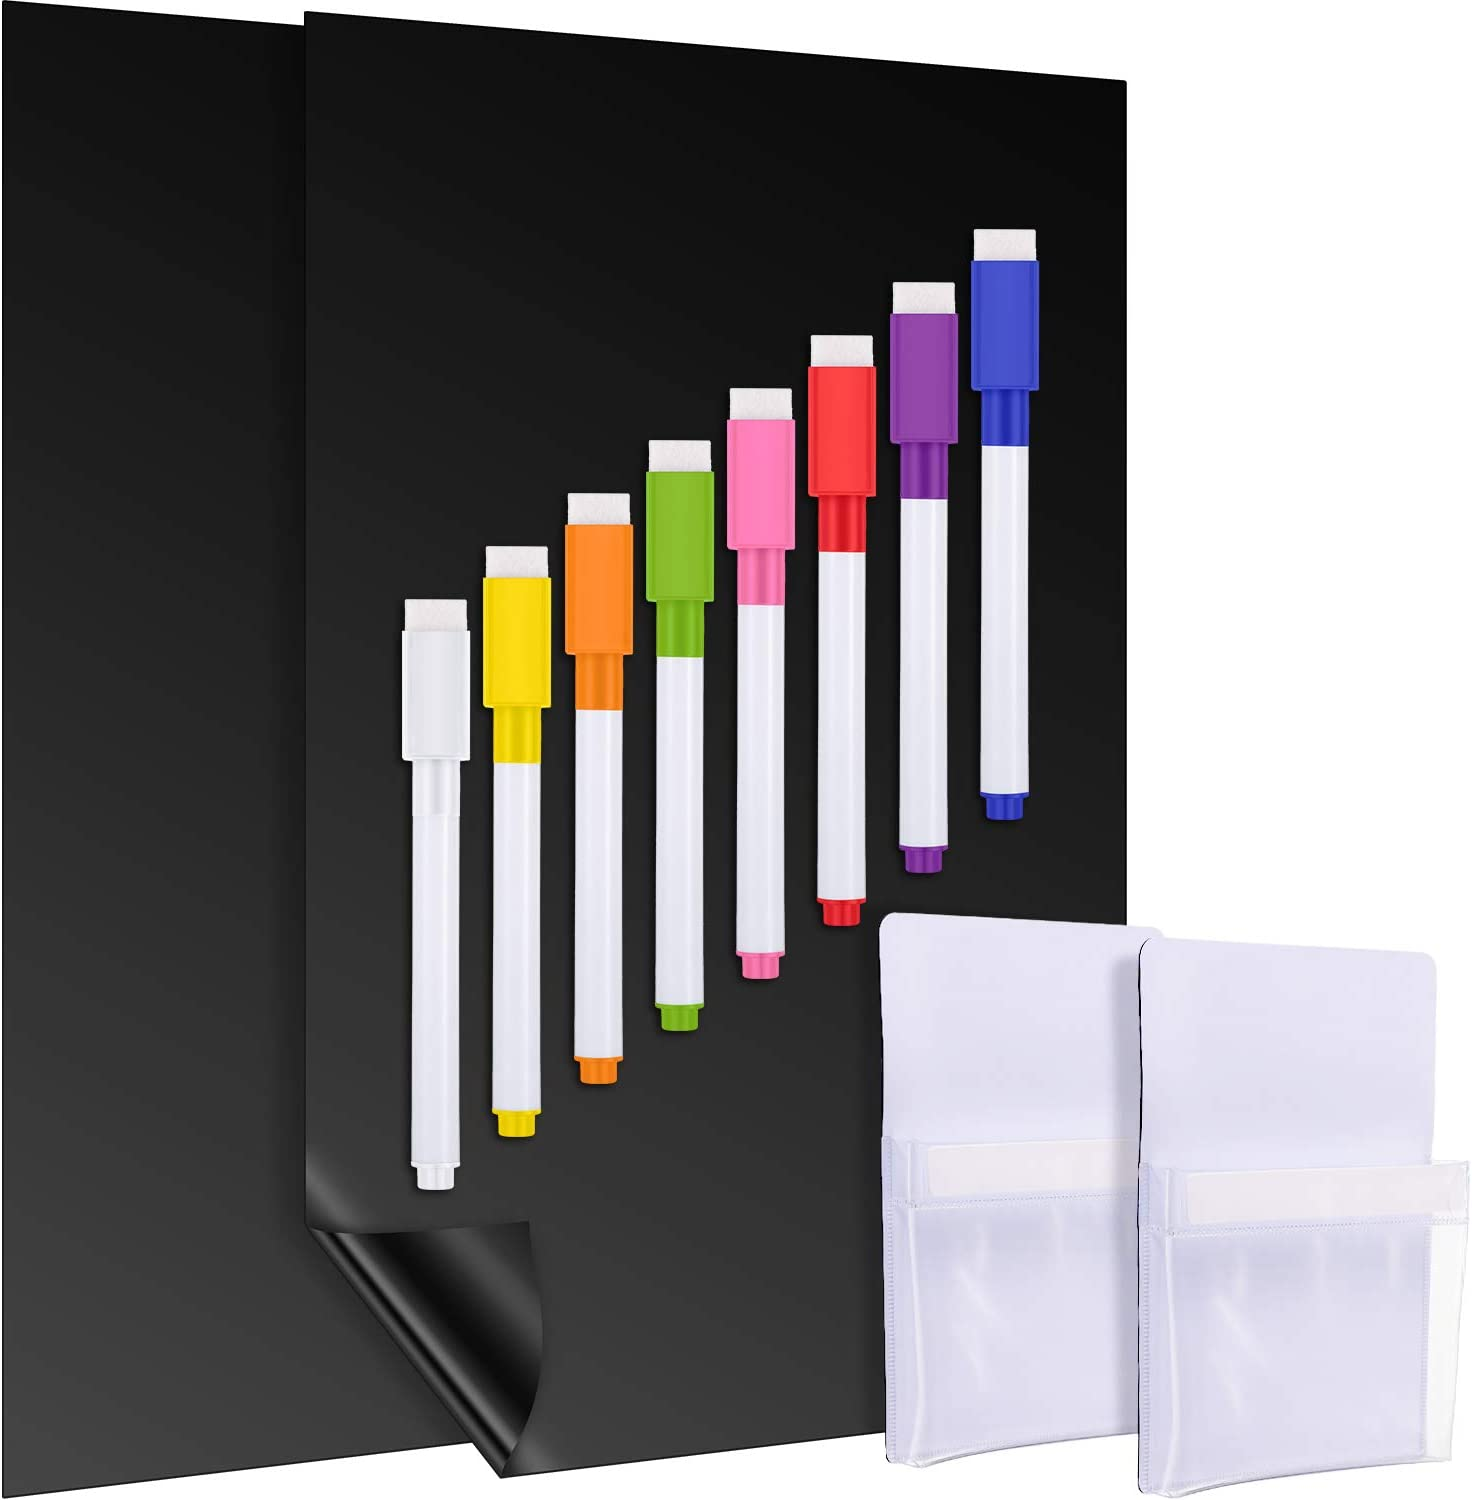 2 Pieces Magnetic Dry Erase Boards with 2 Pieces Magnetic Pen Holders, 8 Pieces Colorful Dry Erase Markers for Office Home School Supplies